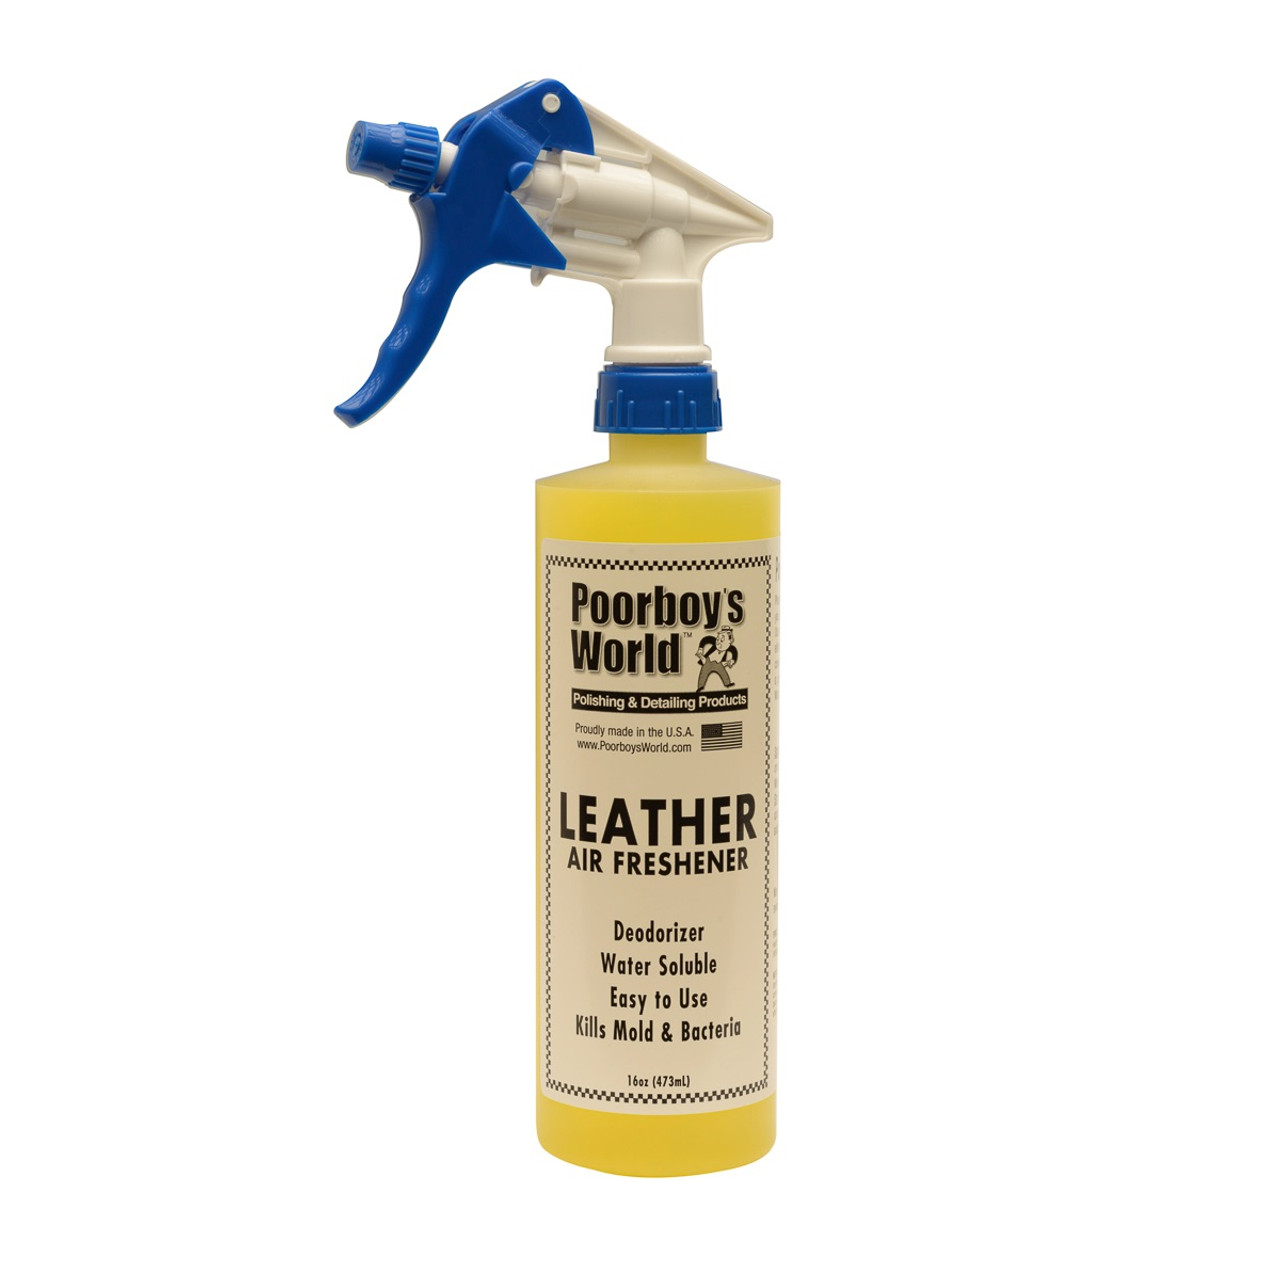 Poorboy's World Leather Air Freshener 16oz w/Sprayer